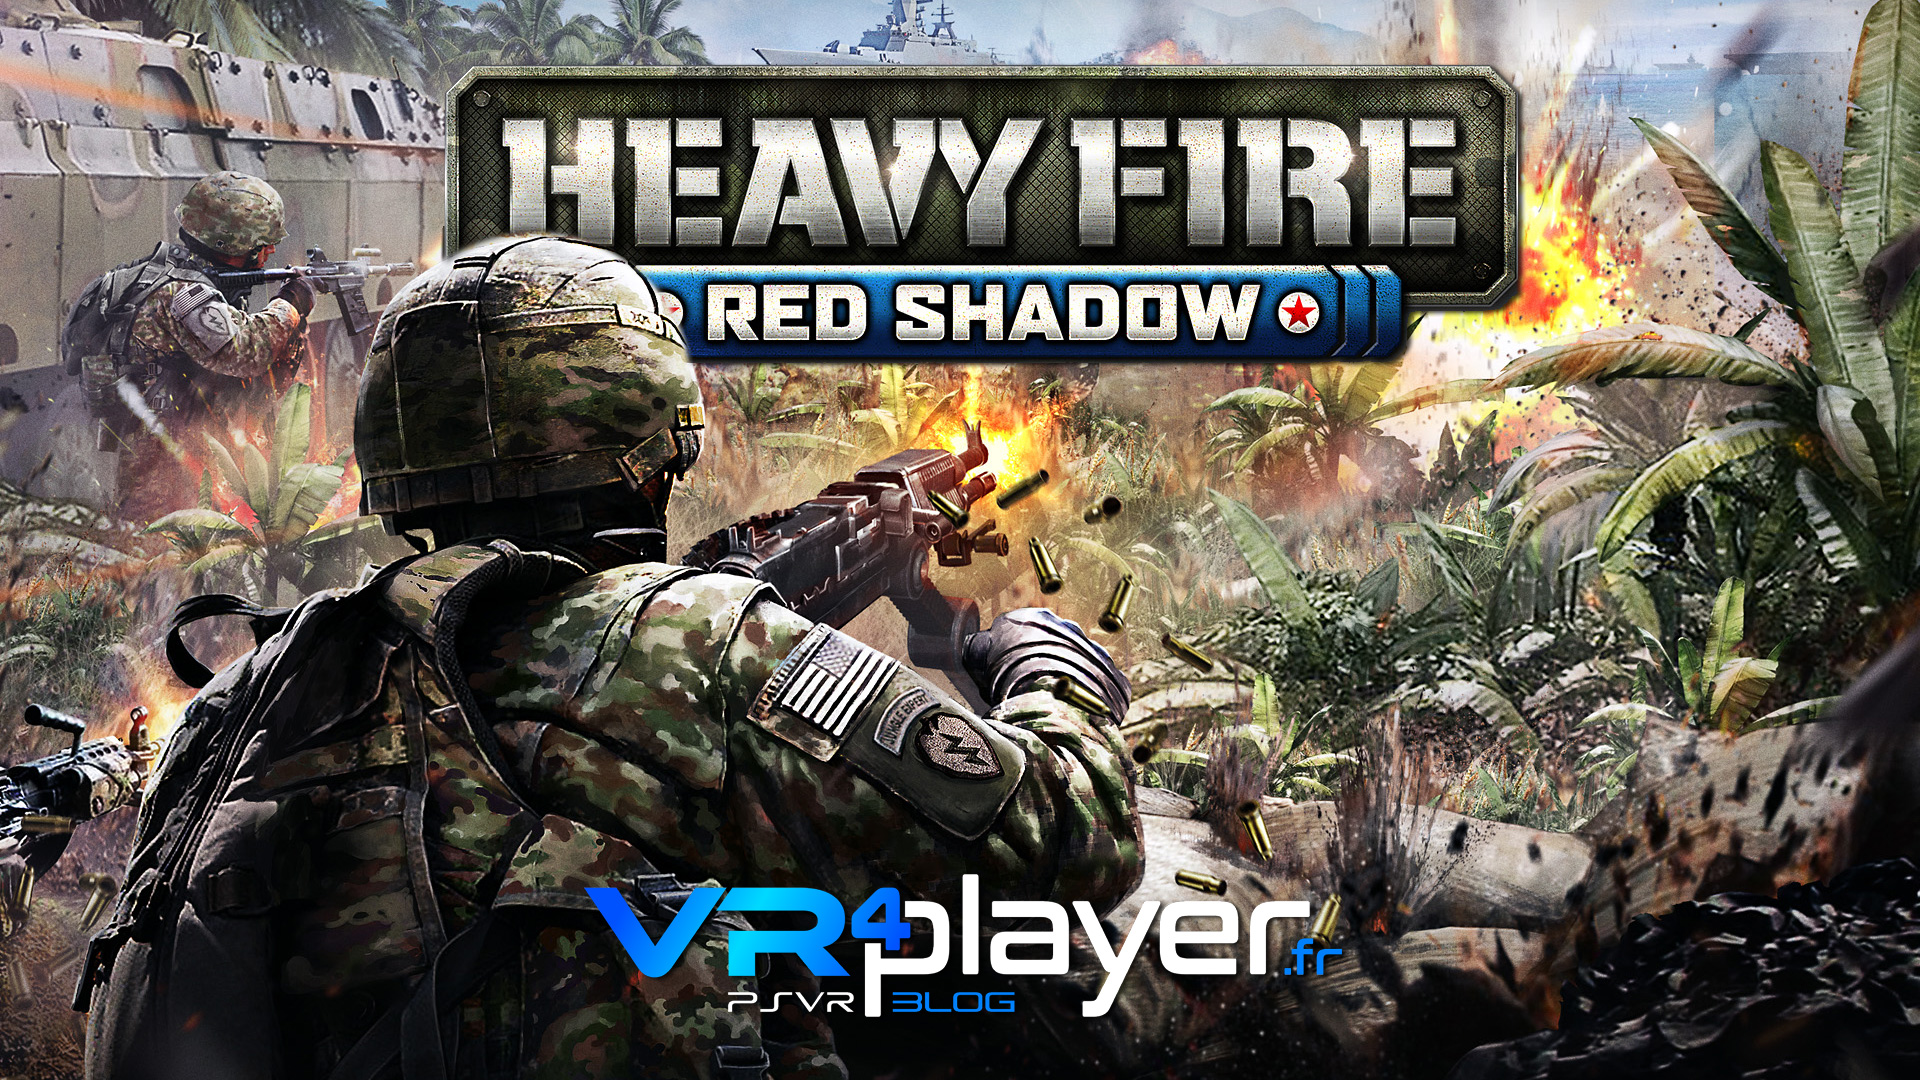 Heavy Fire Red Shadow a une date sur PS4 et PSVR vr4player.fr